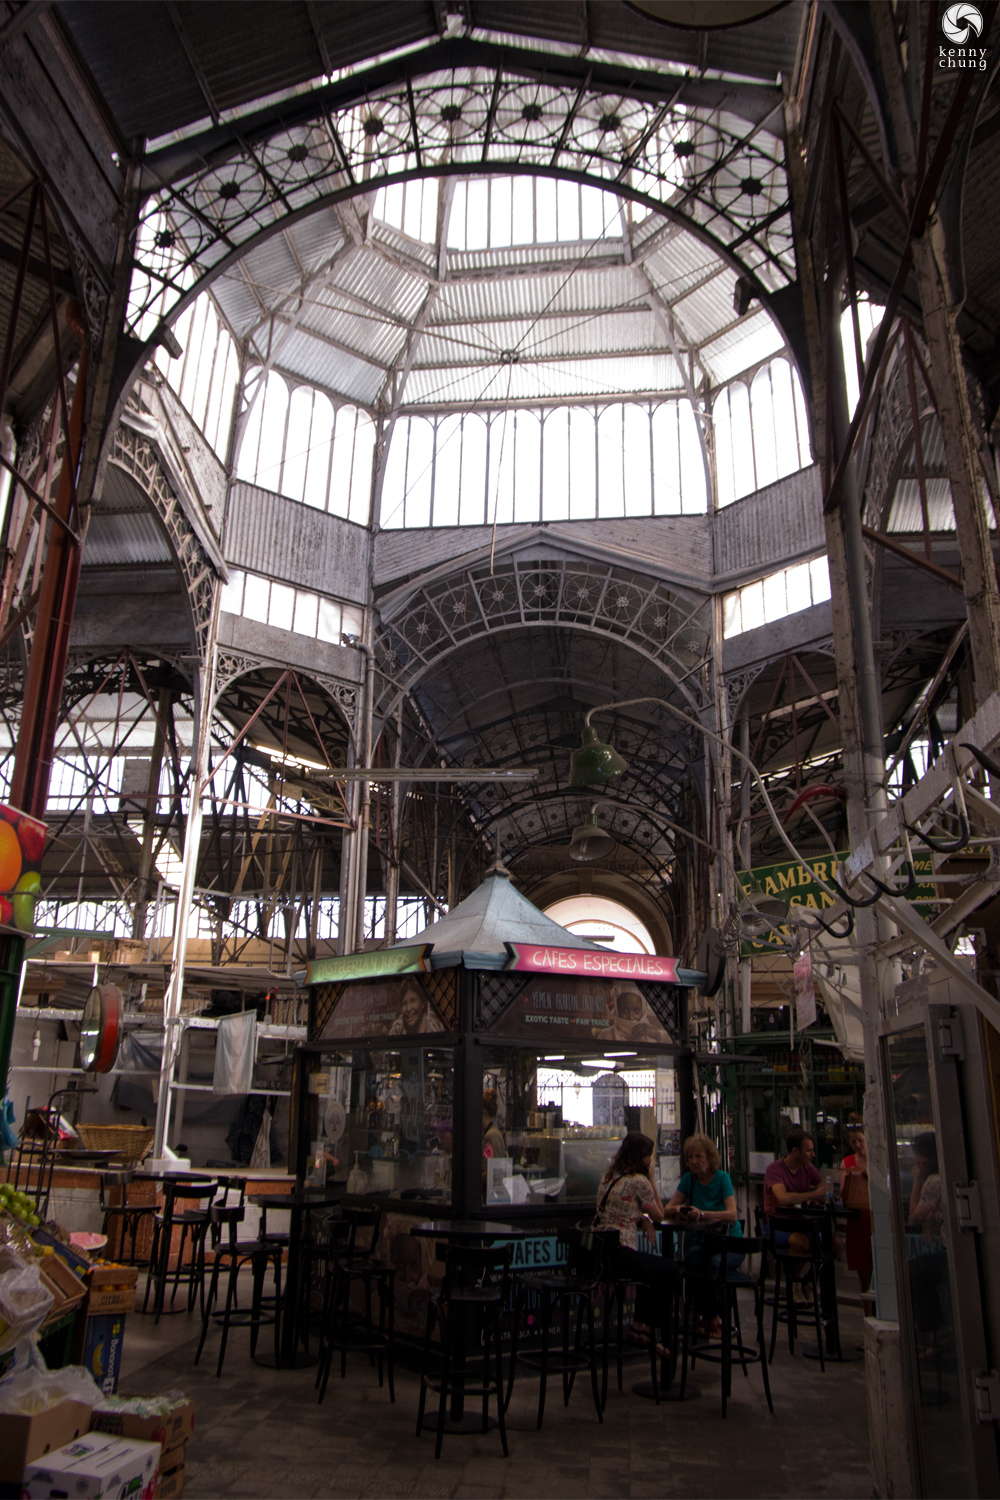 Skylight and Cafe at Mercado de San Telmo